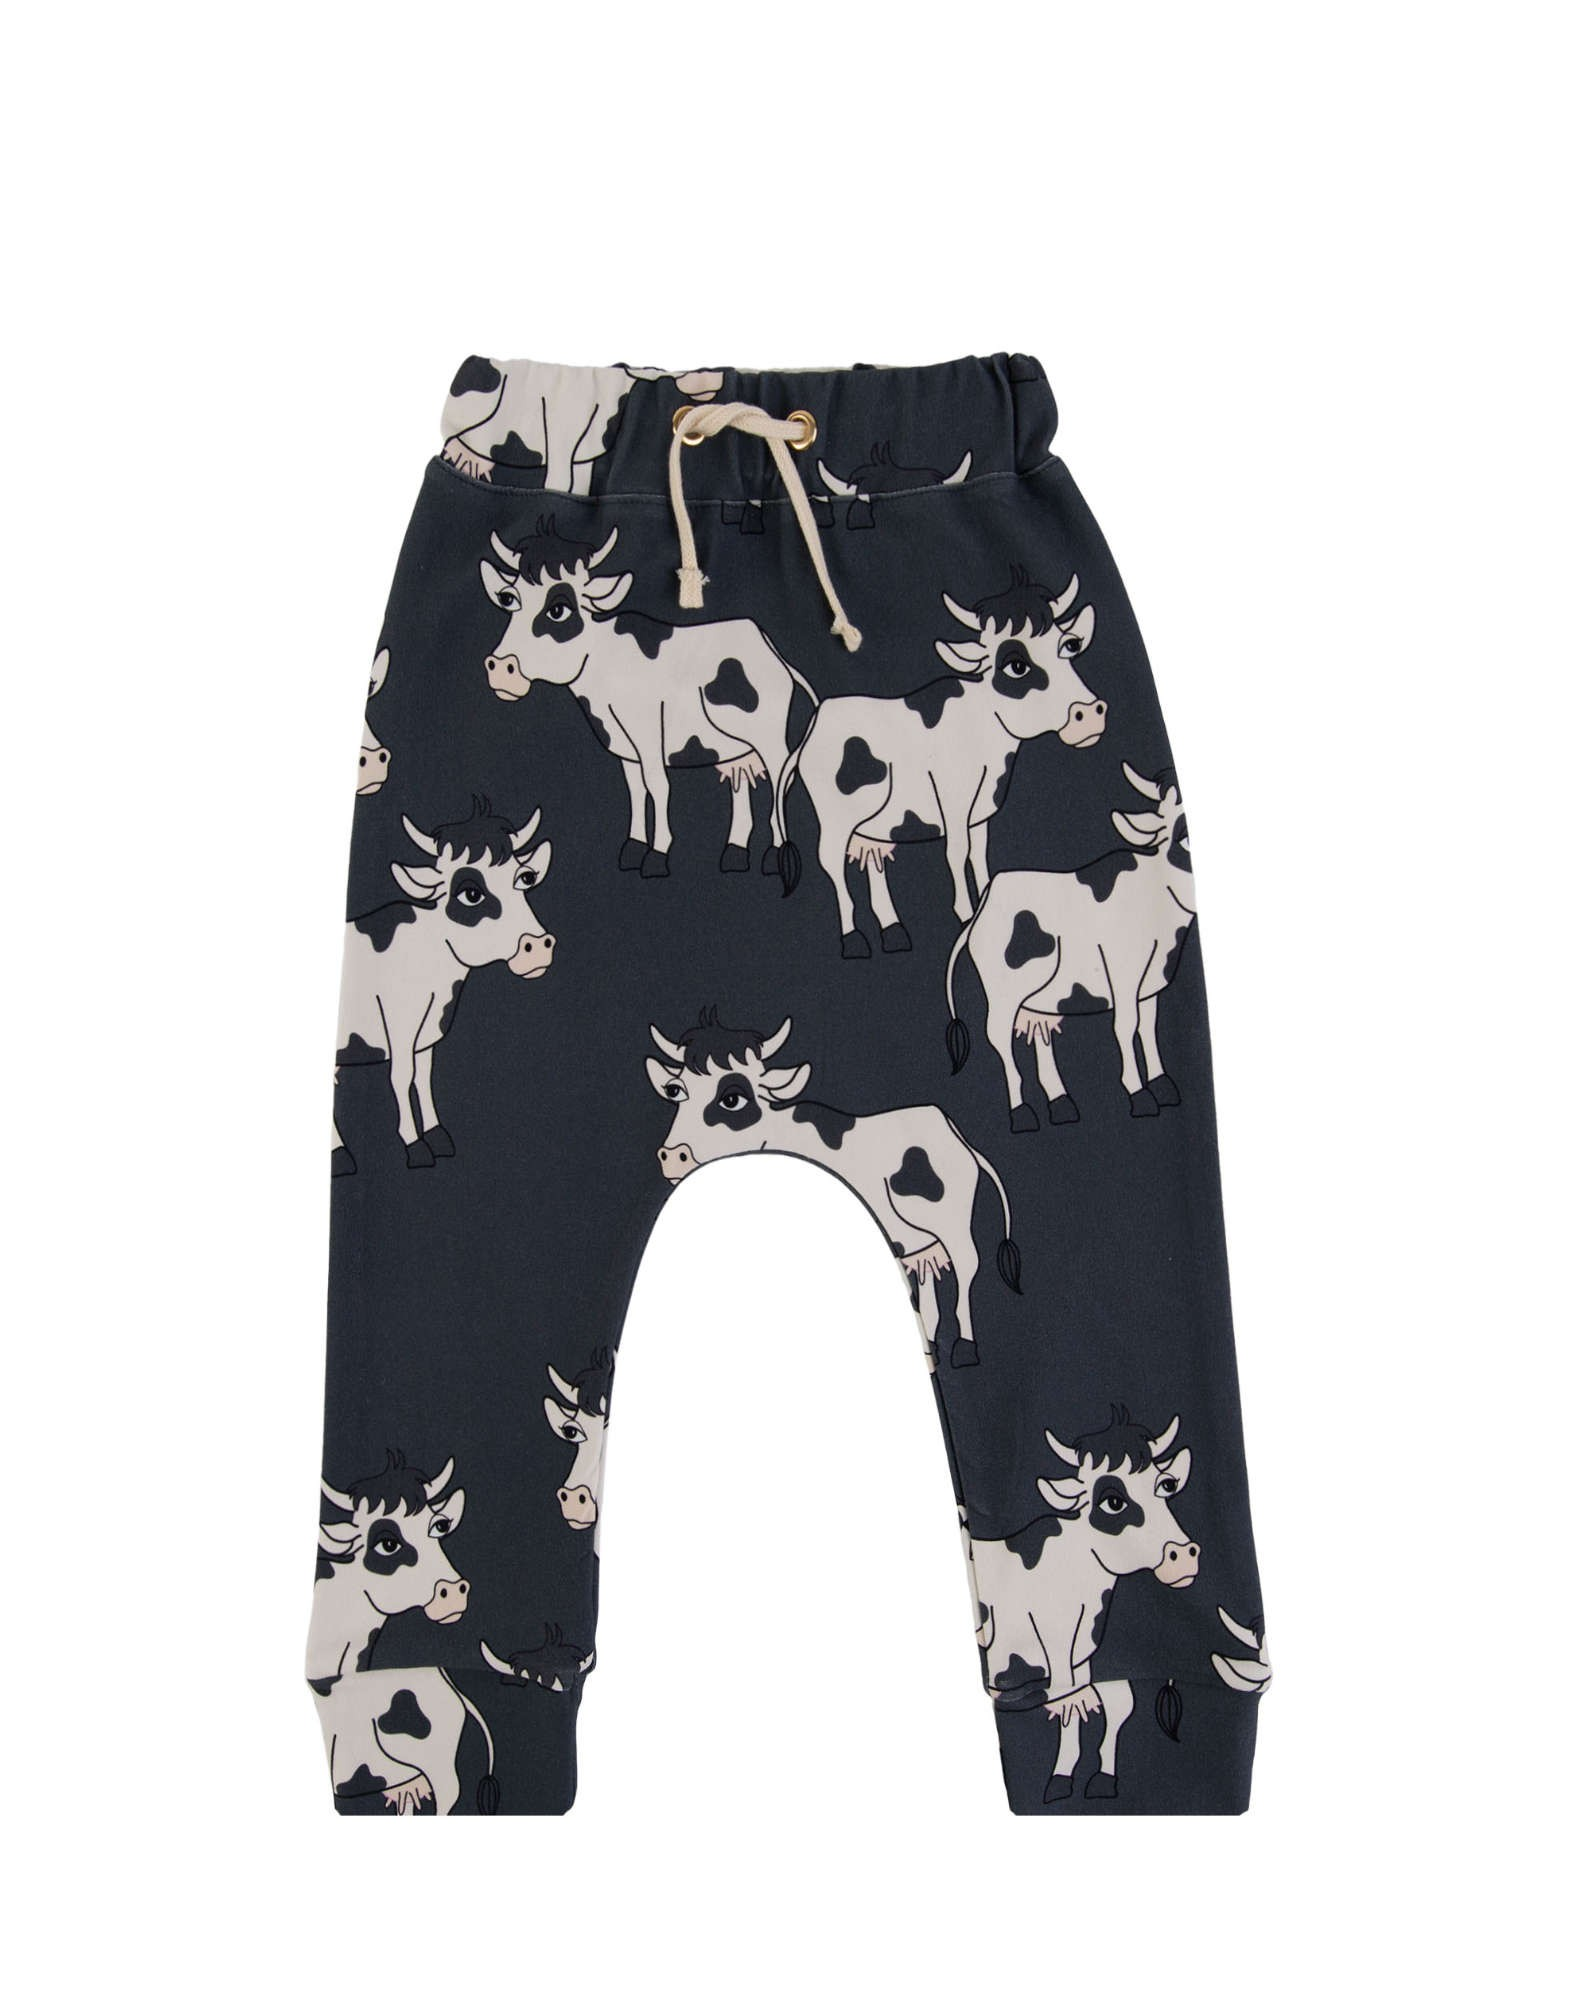 COW DARK PANTS